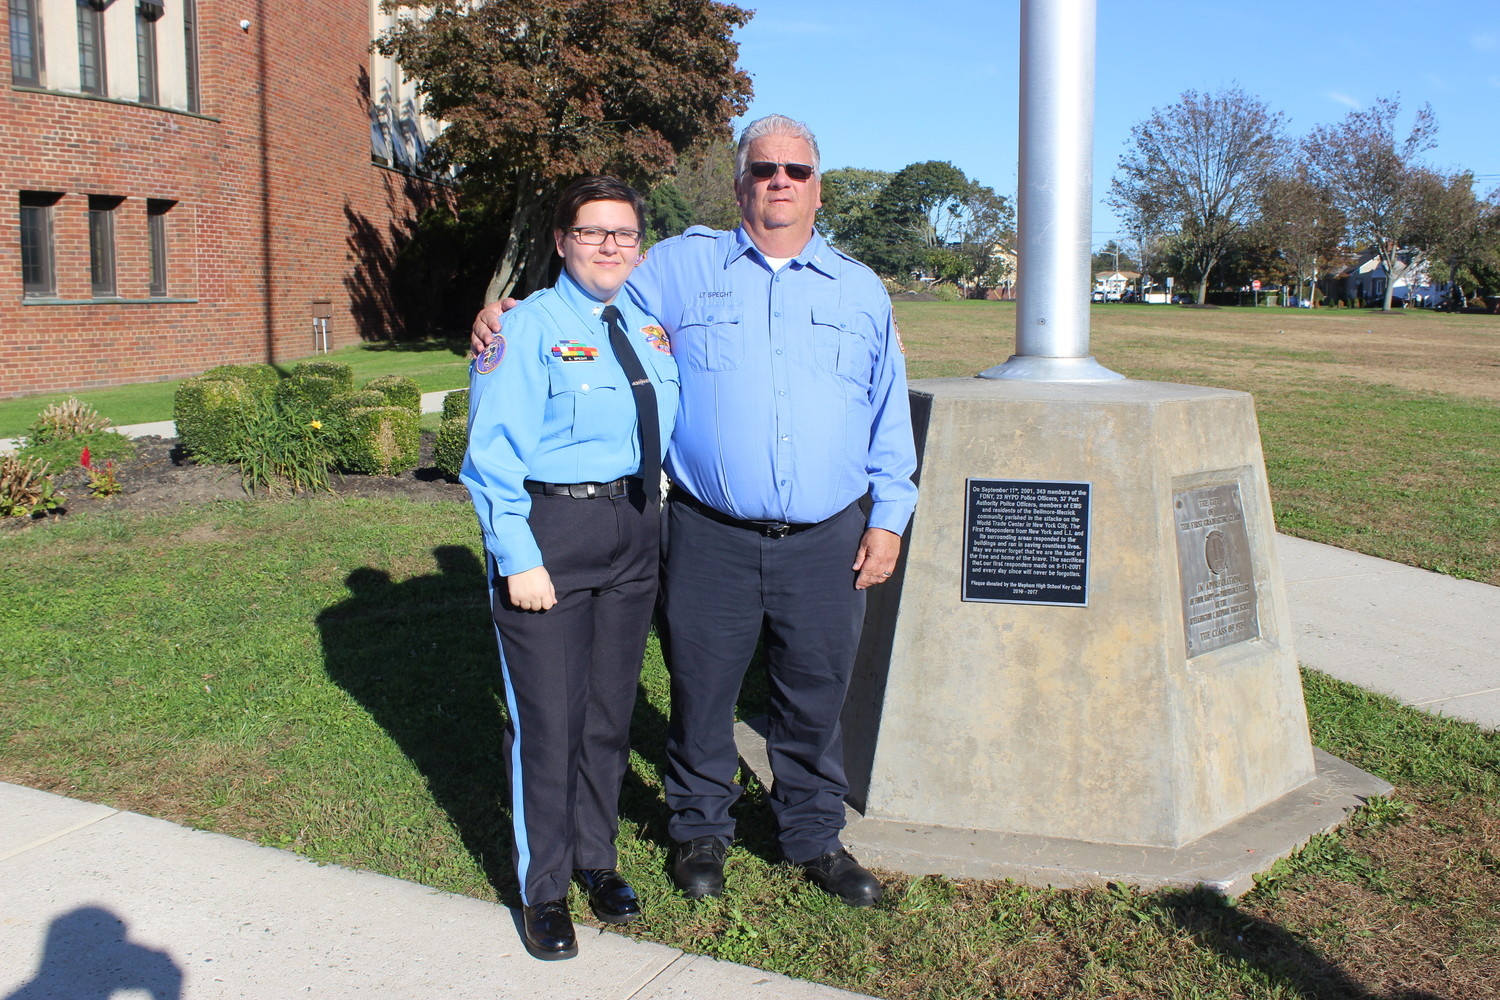 Kayleigh Specht, a senior at Mepham High School and president of its Key Club, spearheaded the dedication of a plaque to commemorate the citizens who lost their lives in the Sept. 11 terrorist attacks. She is also an active member of the Nassau County Police Department Explorers program and is pictured here with her father, of the department, Lieutenant Chris Specht.